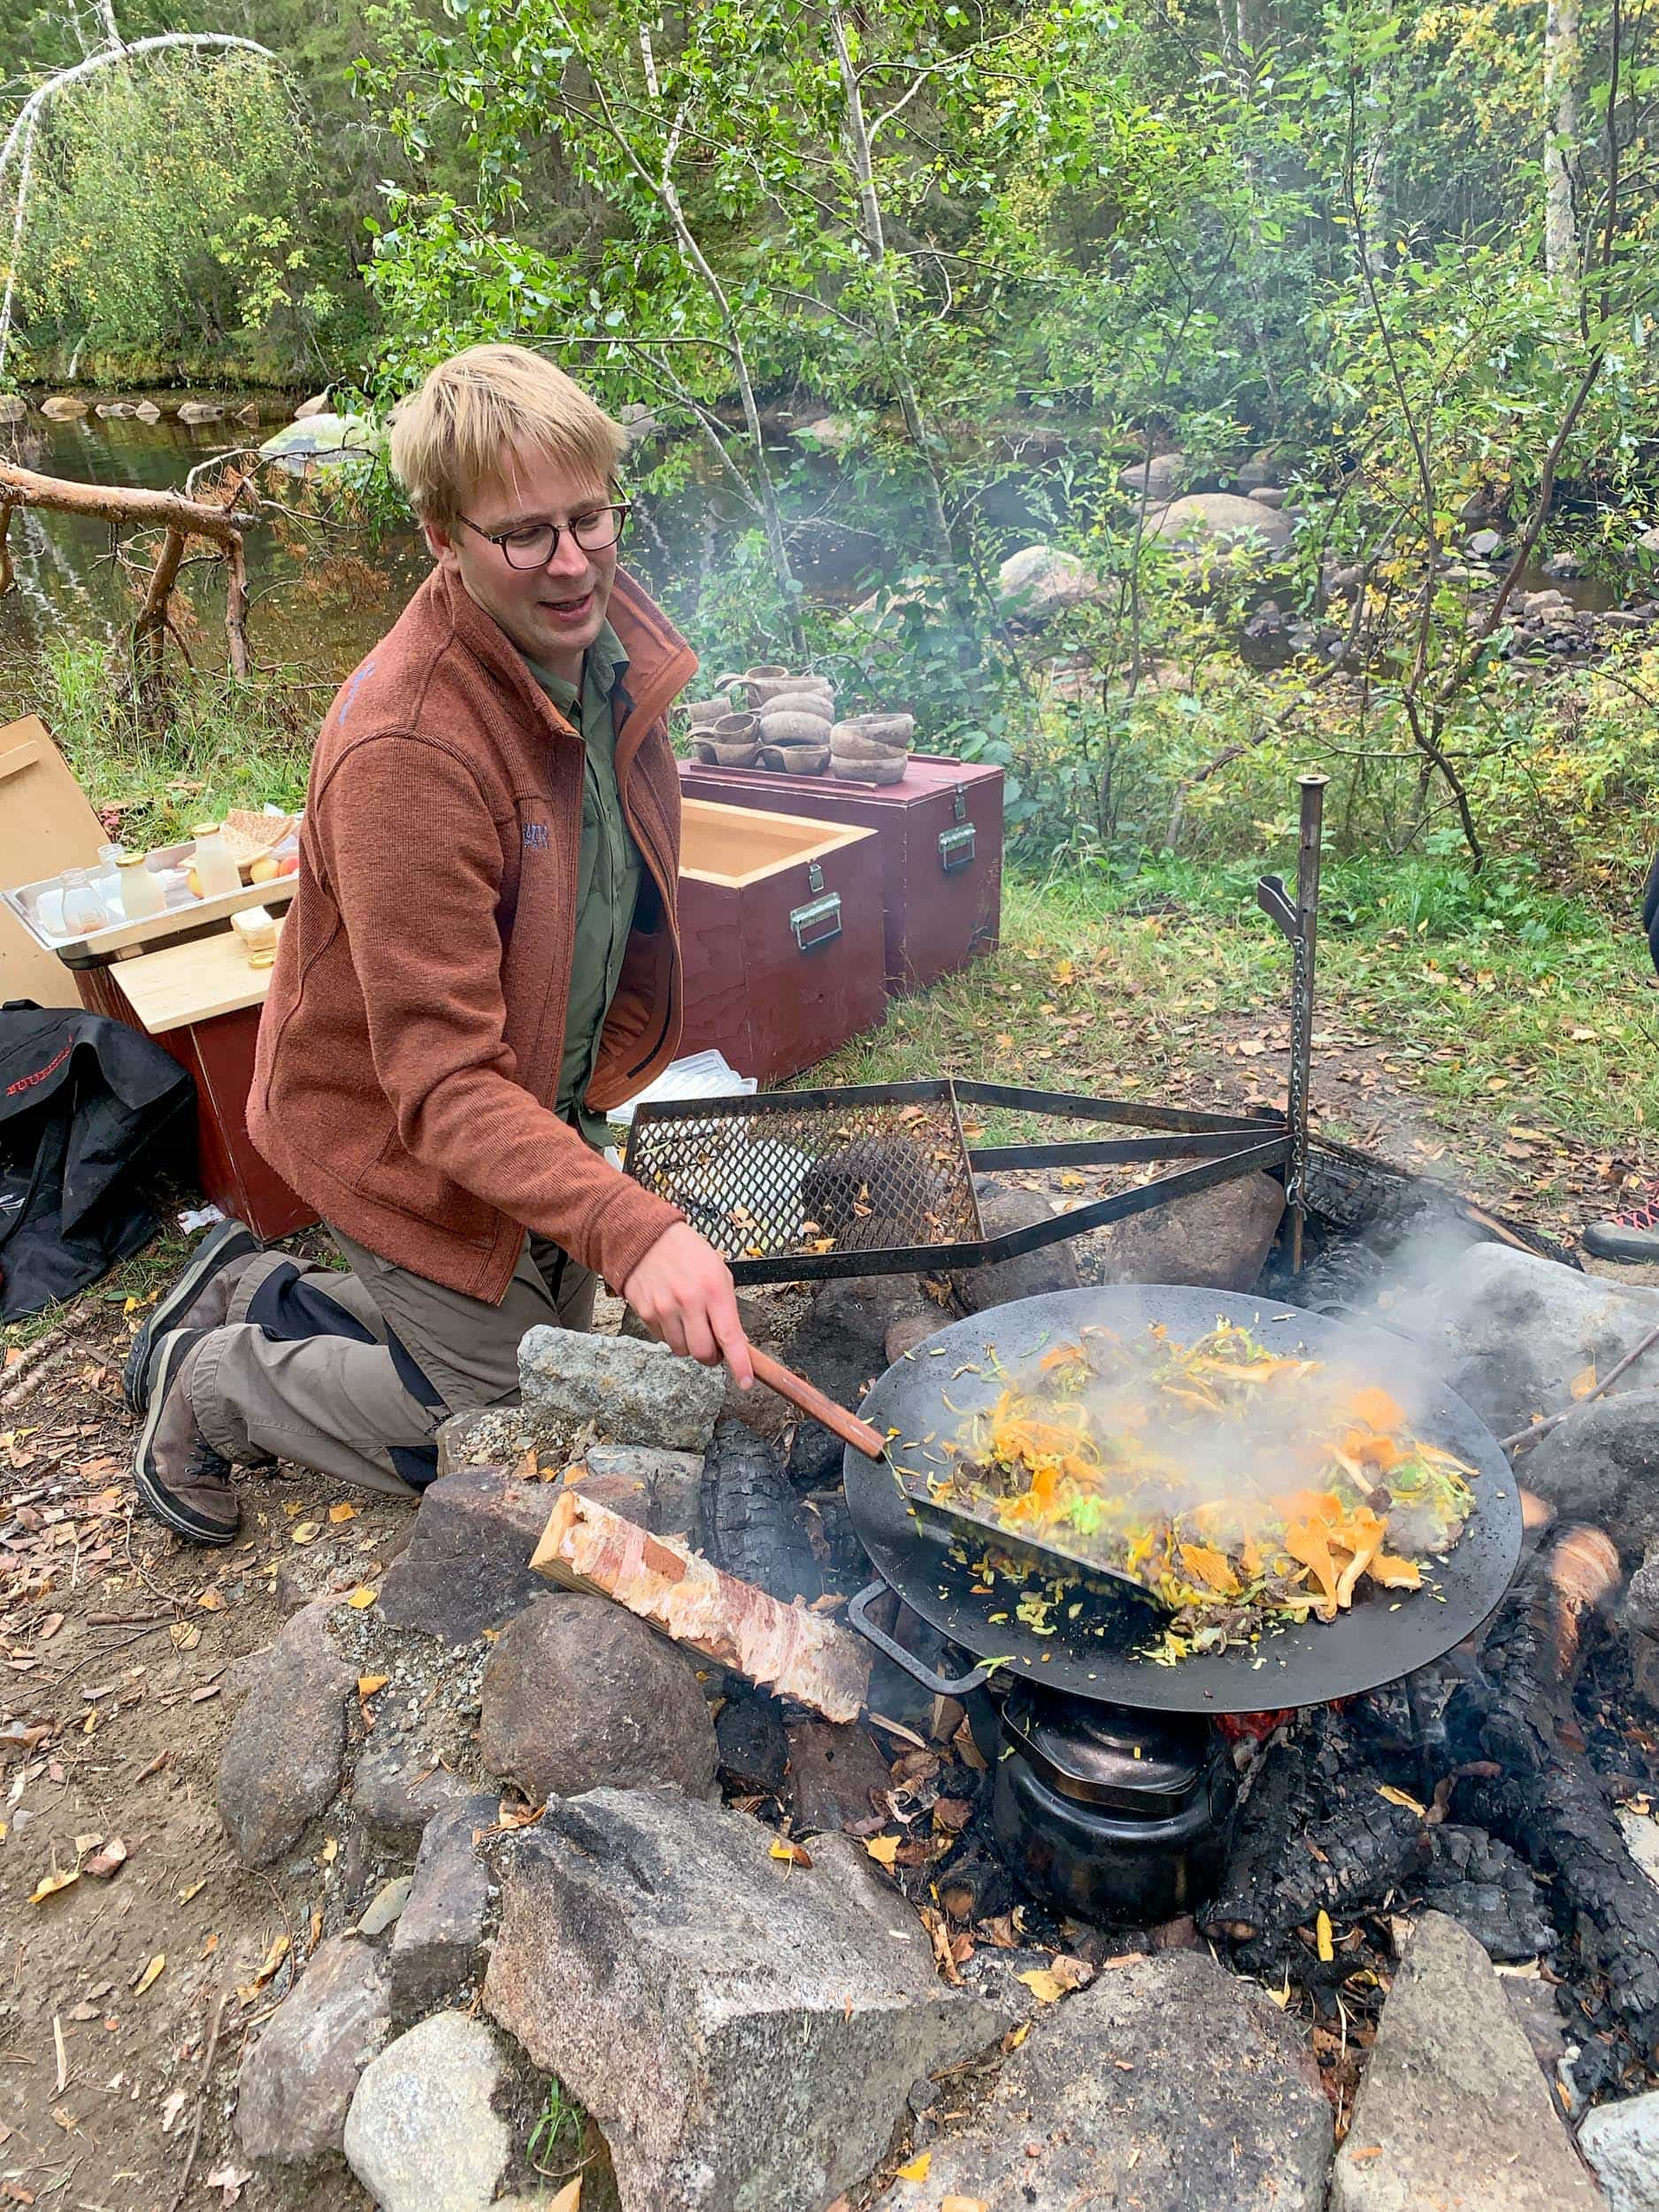 Cooking moose, a traditional Swedish food in Lapland